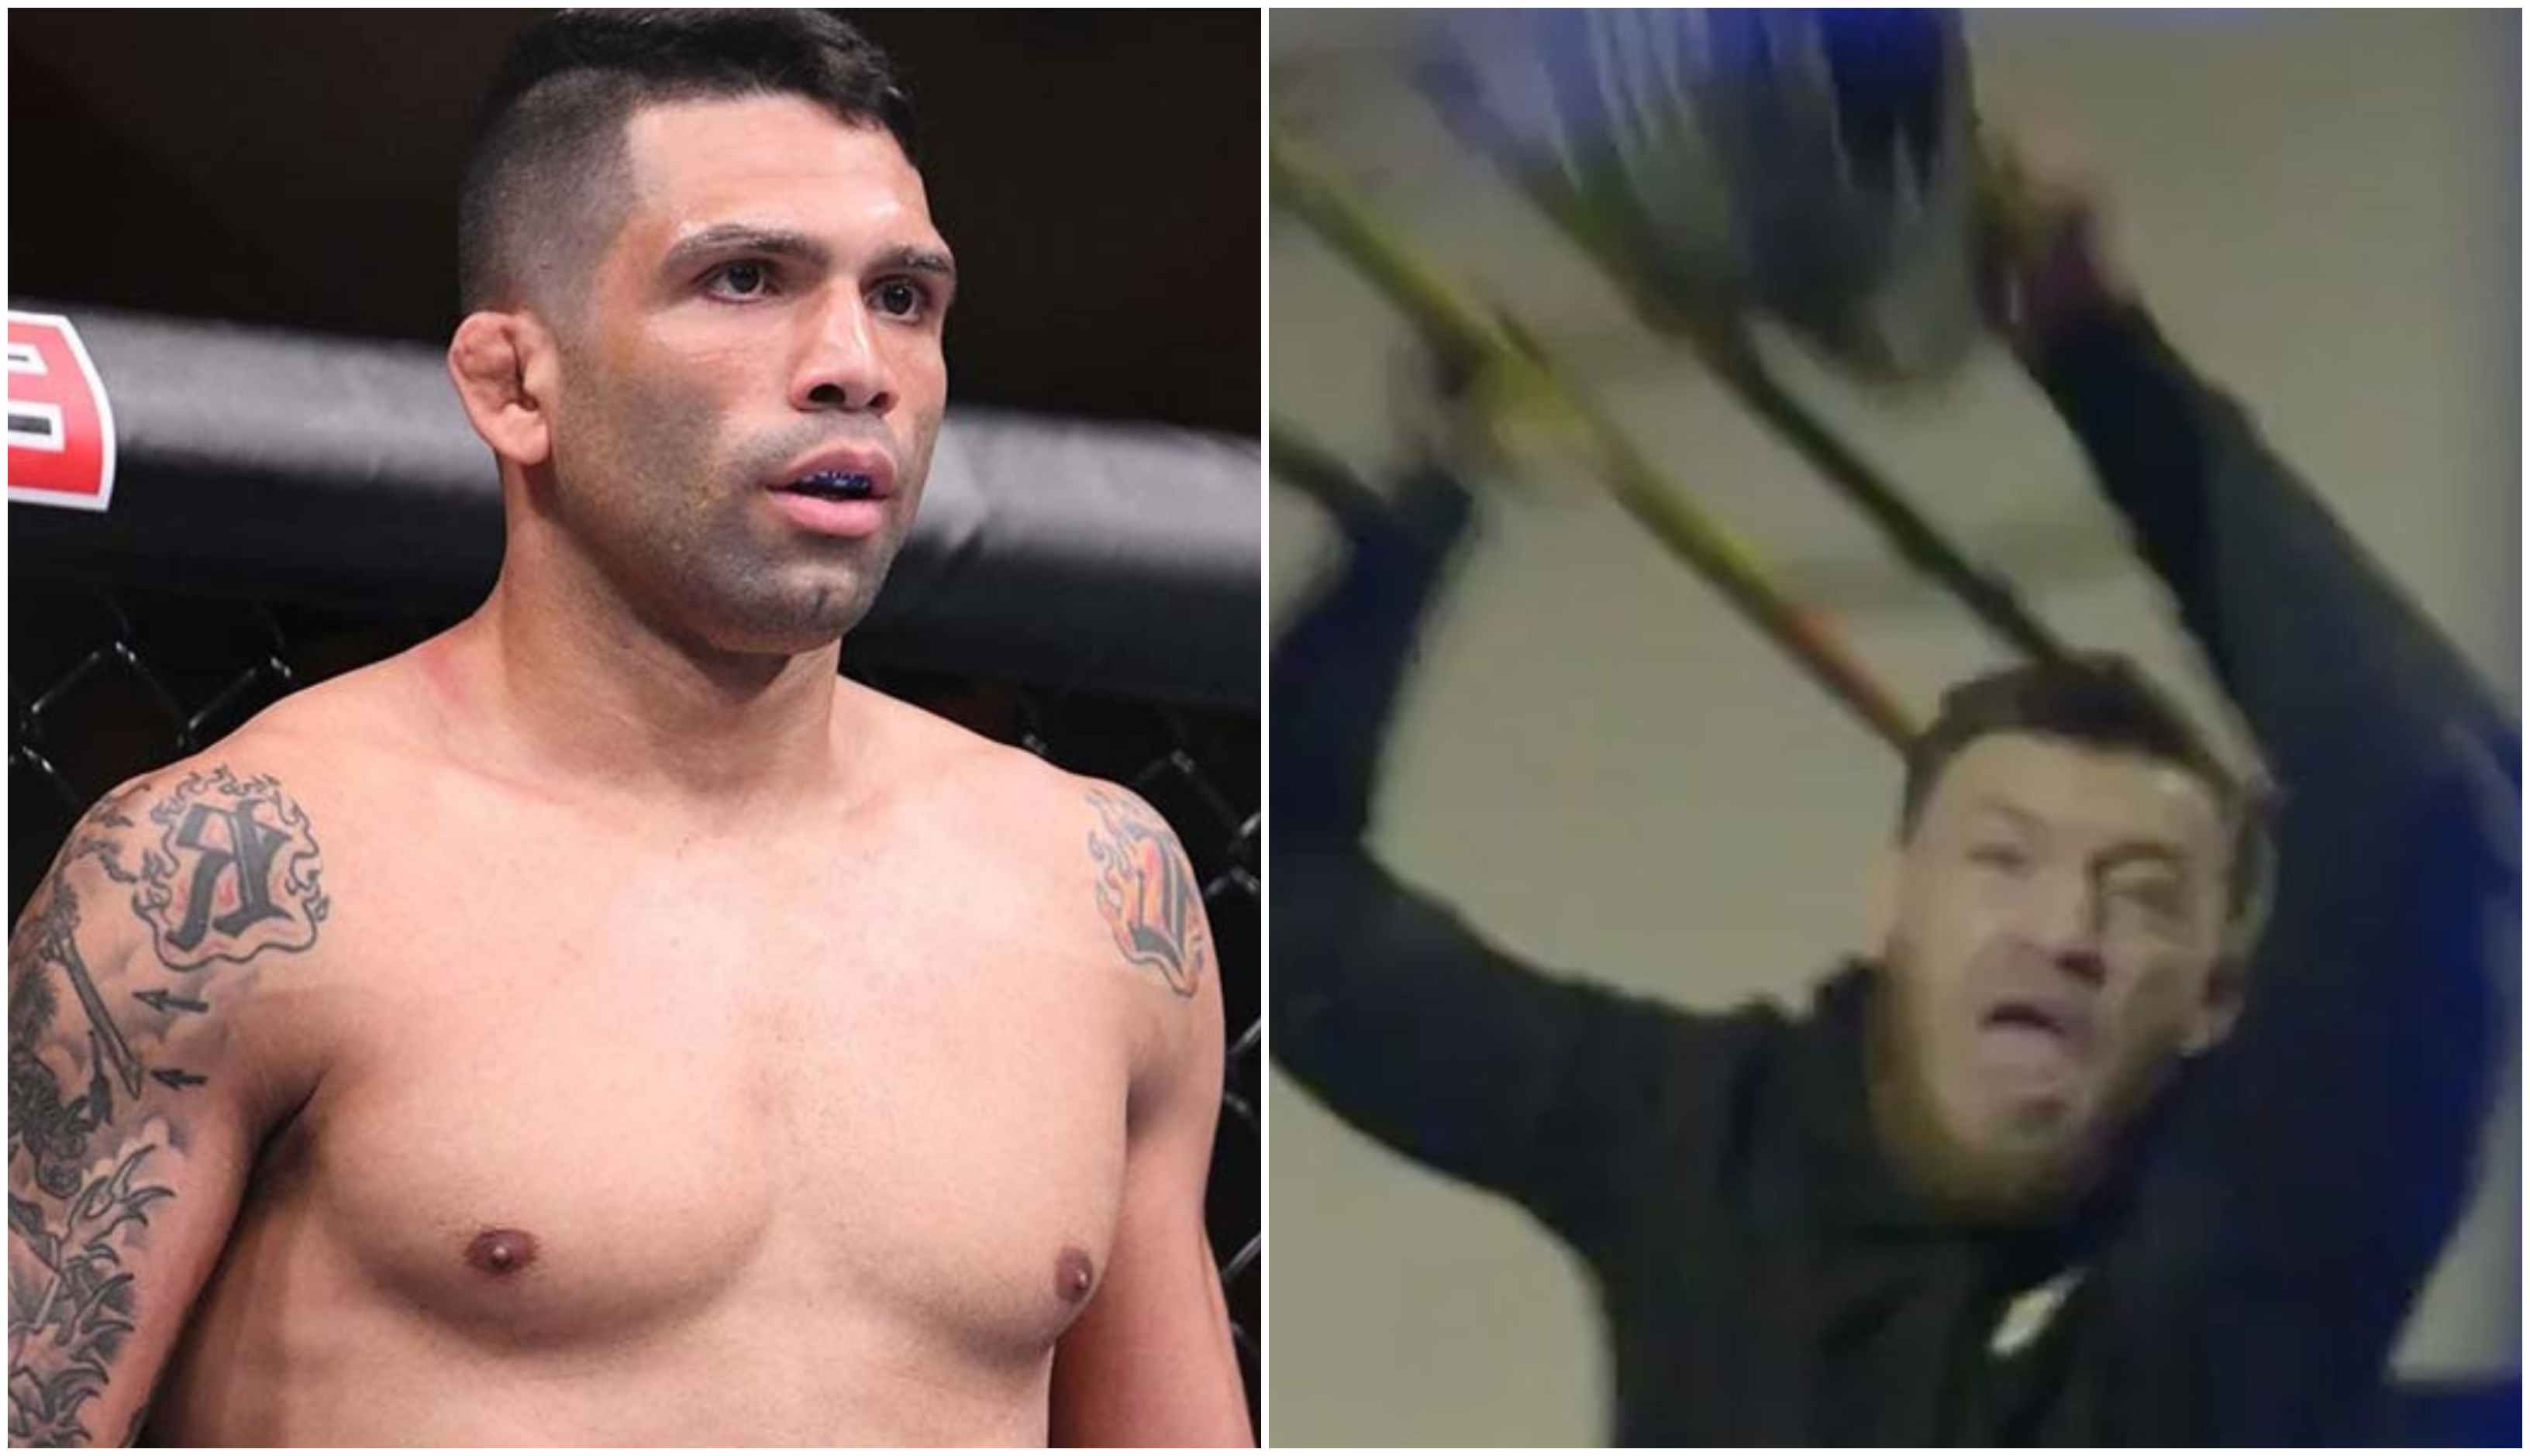 Undefeated Claudio Silva contemplates 'leaving McGregor unconscious in the streets' to attract UFC's attention - Claudio